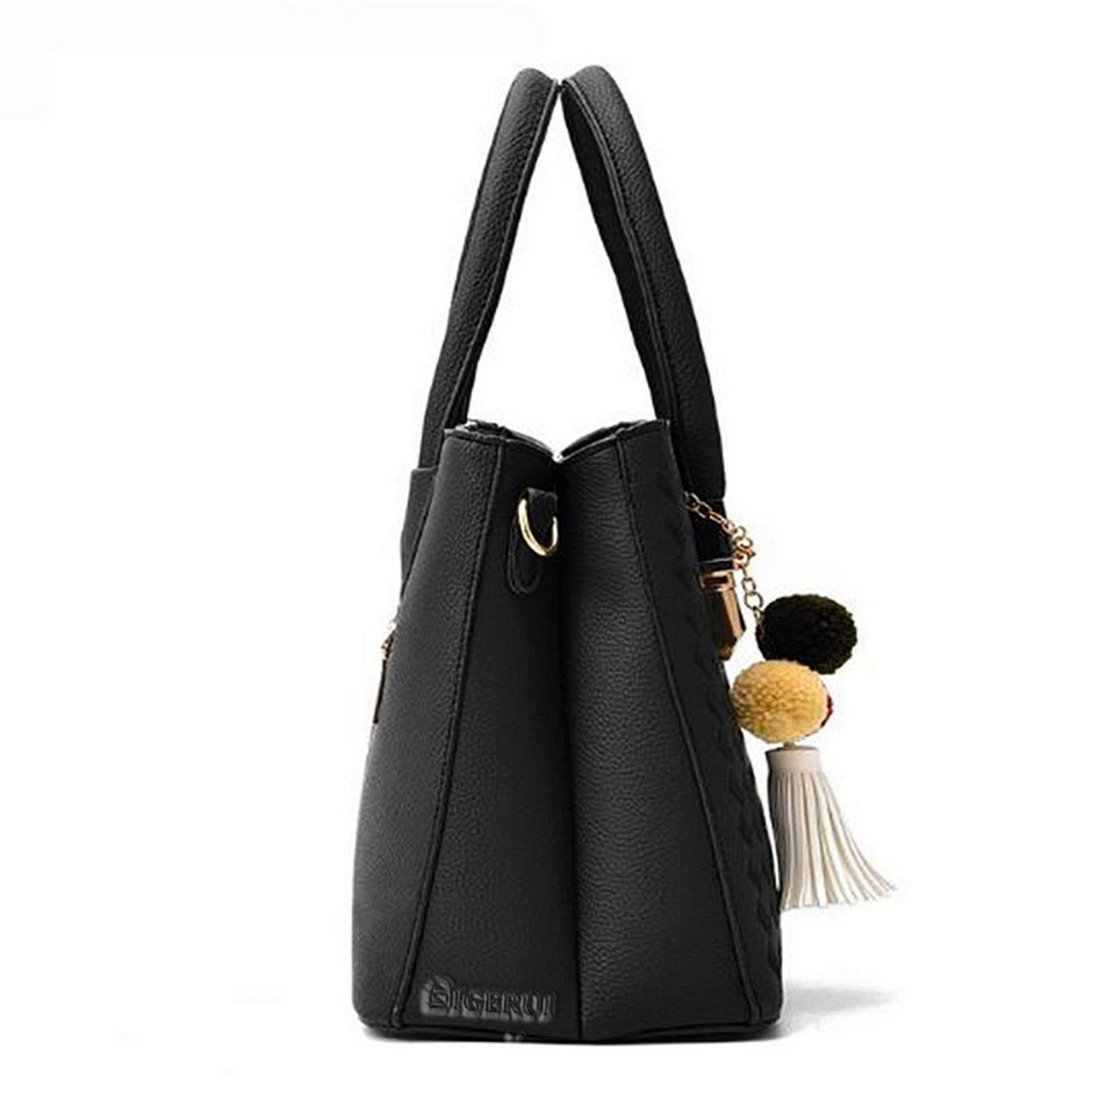 Handbags for Women,Tassel Pompom Top Handle Clutch Shoulder Bag Totes